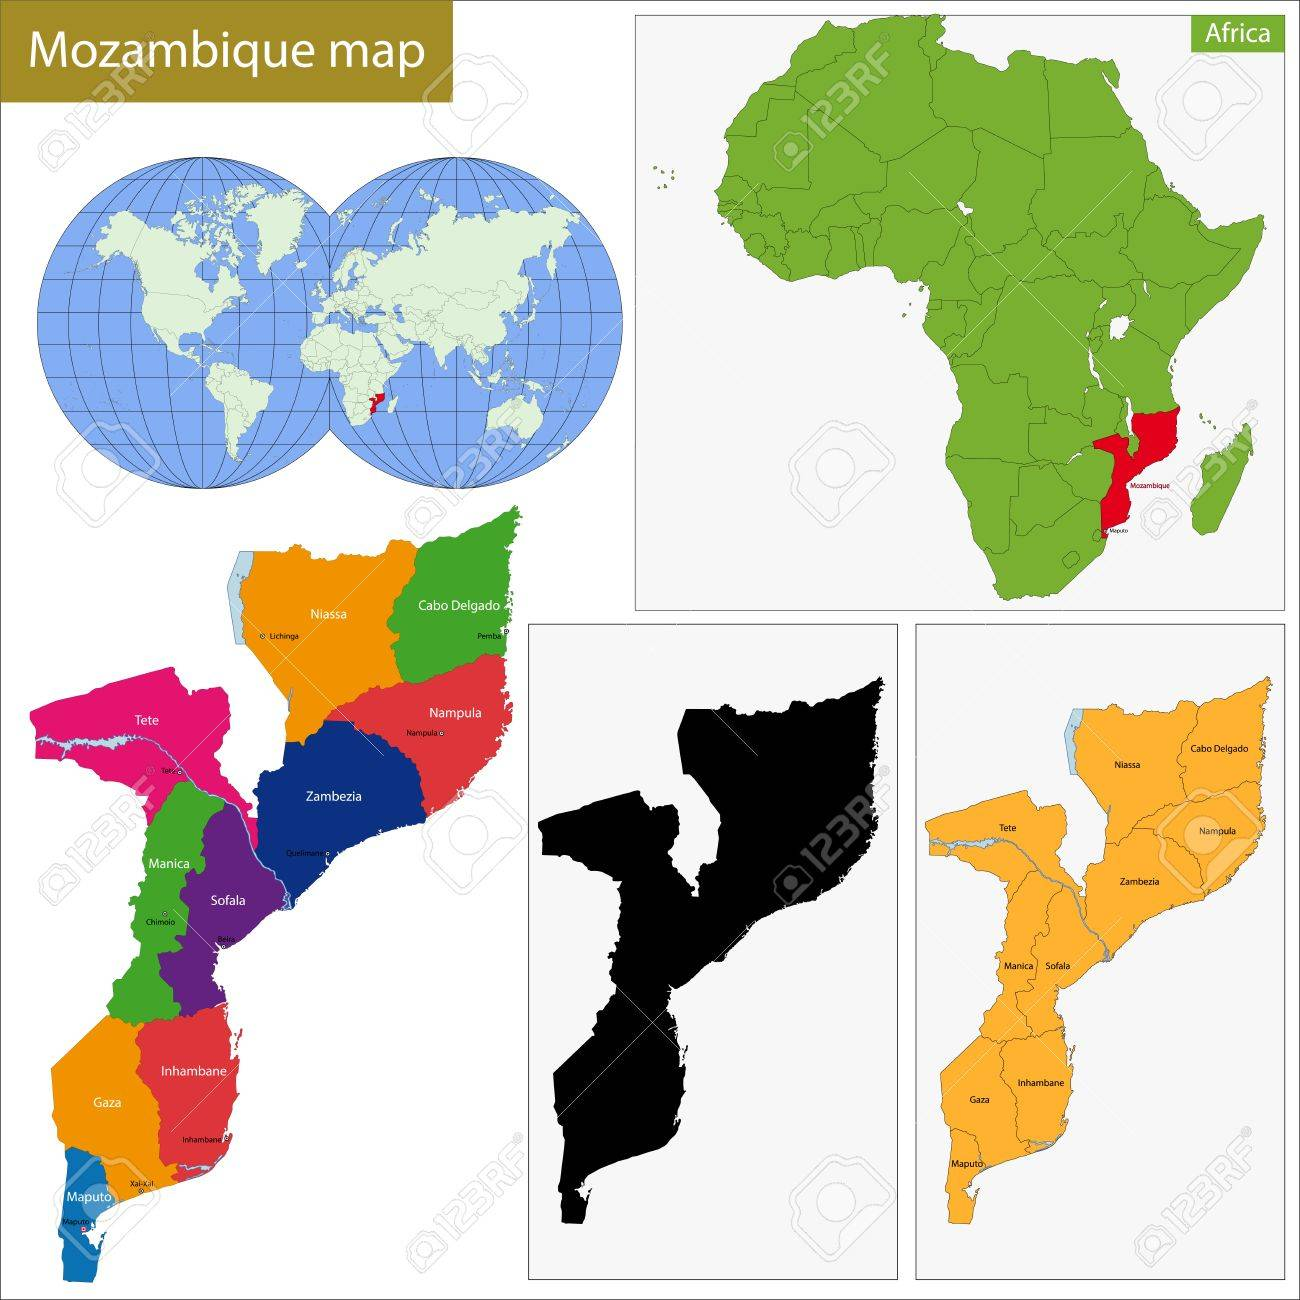 Administrative Division Of The Republic Of Mozambique Royalty Free